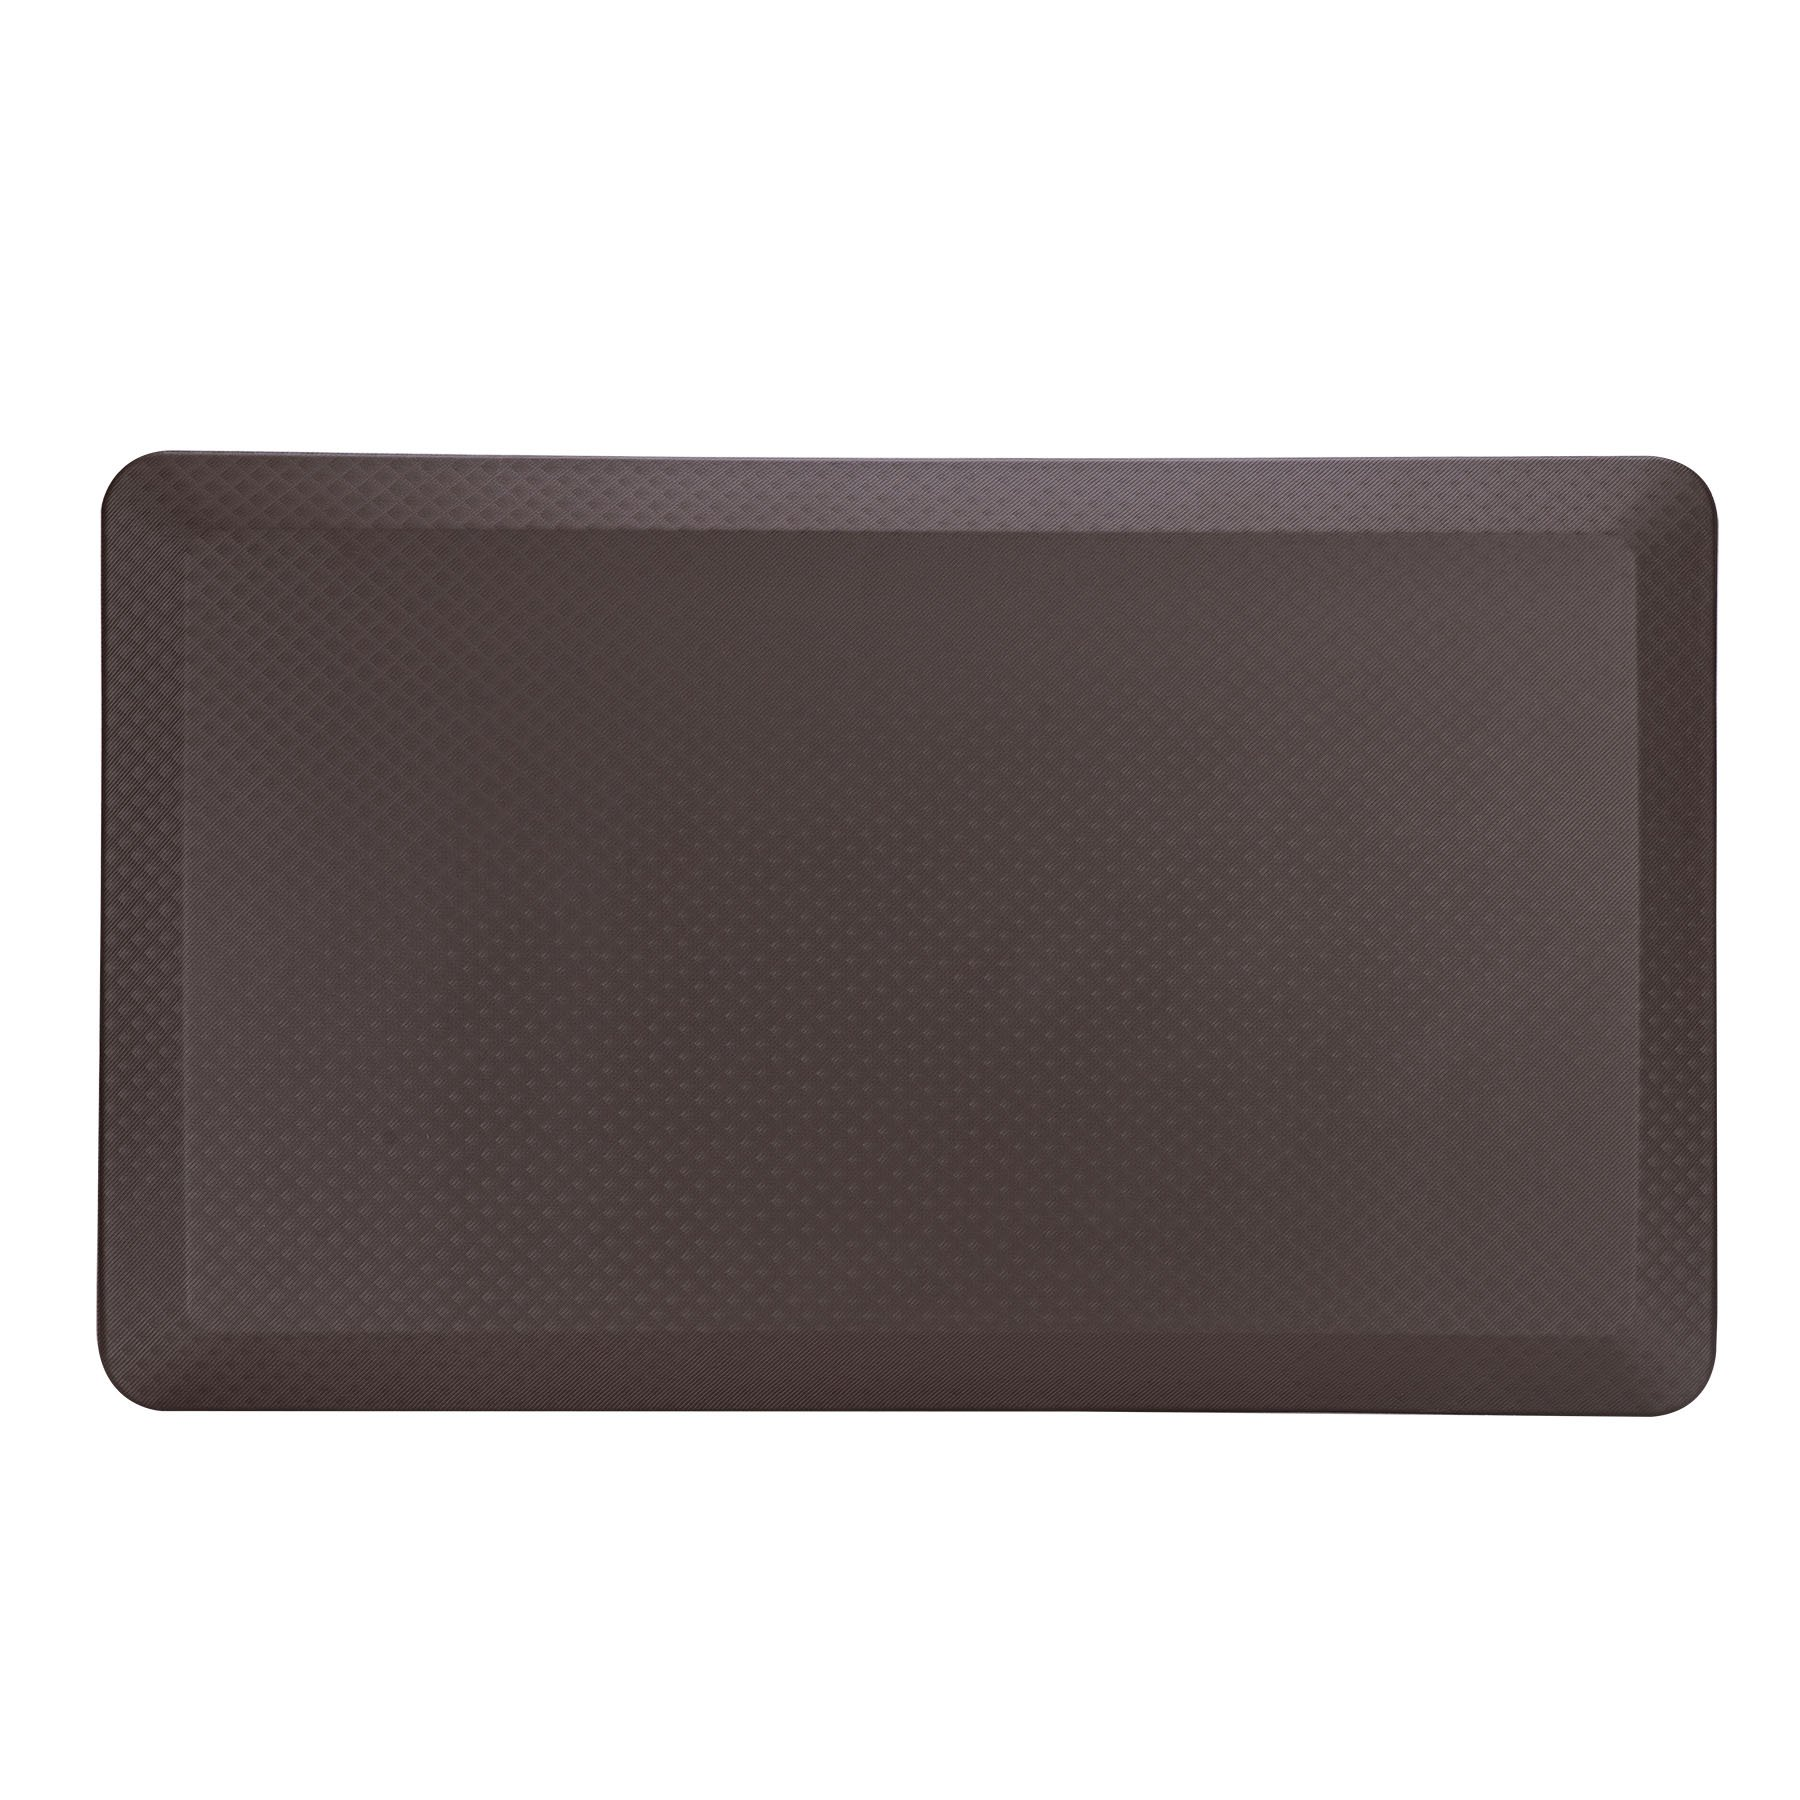 CO-Z 3/4'' Thick Anti-Fatigue Comfort Mat Non-Toxic Waterproof Oil Proof Kitchen Floor Mat PU PVC Eco-Friendly Easy to Clean, 39'' x 20''